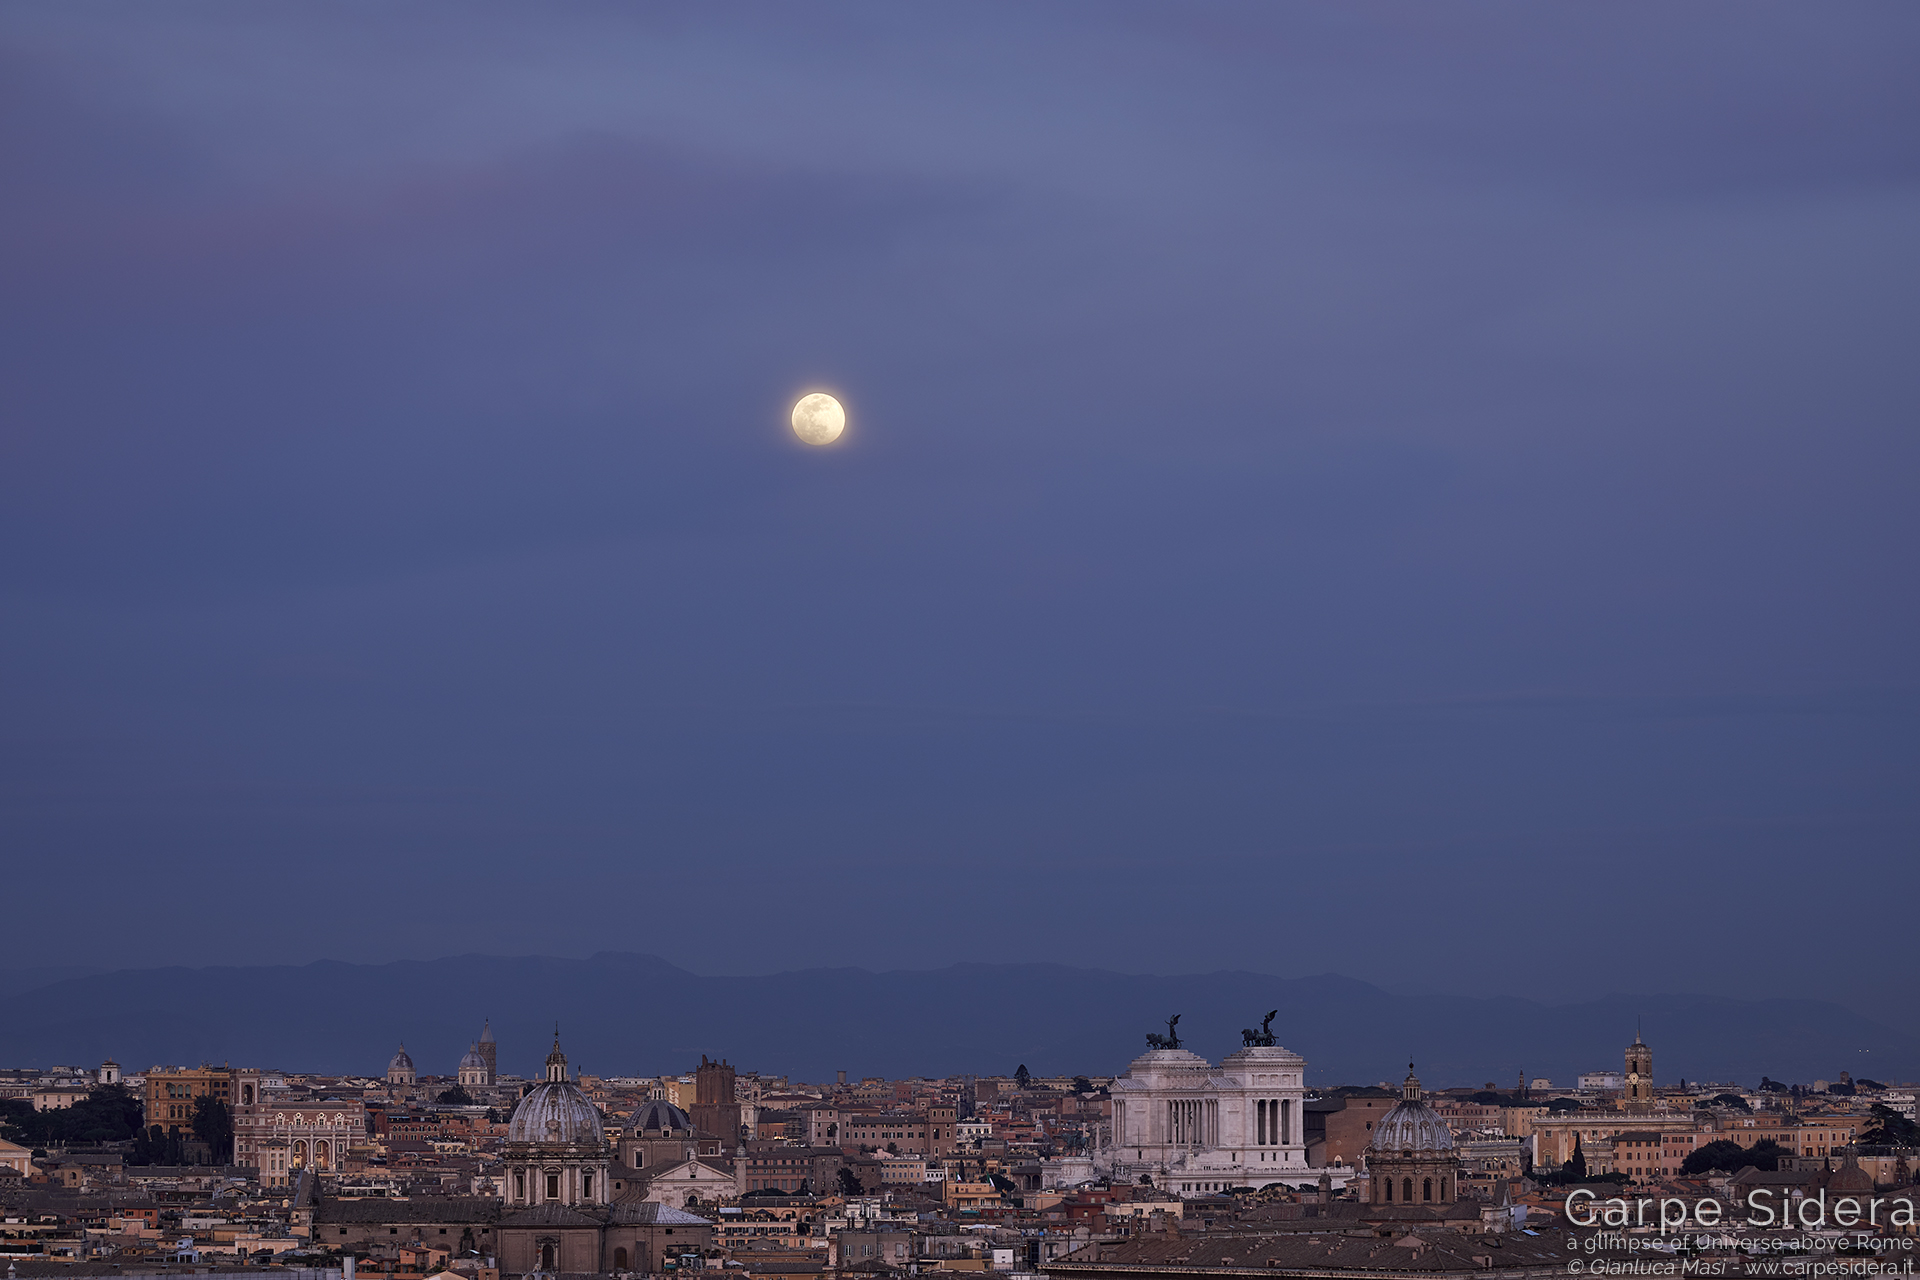 The Supermoon finally showed in the evening evening, while the twilight was quickly fading.